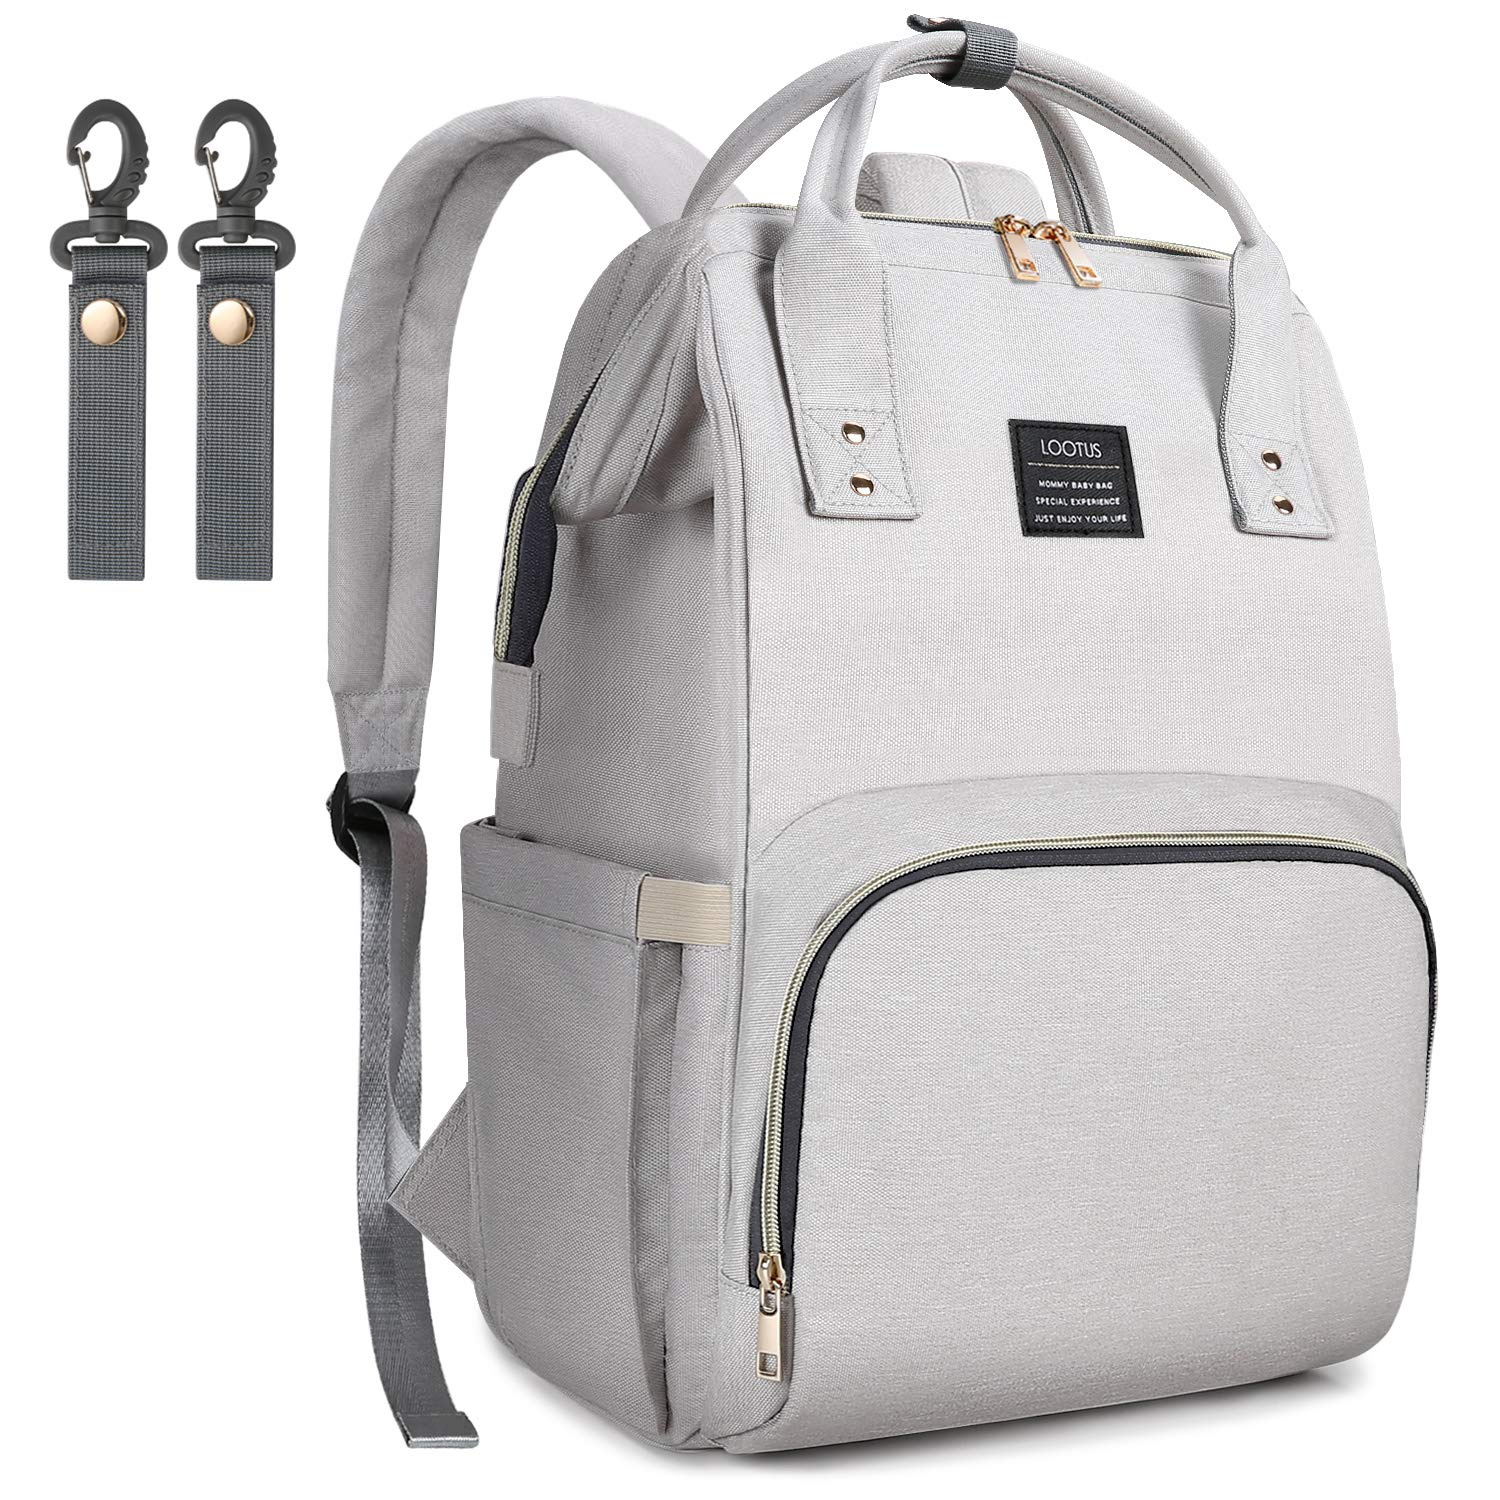 Diaper Bag Backpack LOOTUS Large Multi-Function Waterproof Easy-to-Clean Larger Capacity Travel Backpack Nappy Bags, Baby Diaper Bag with Stroller Straps Insulated Pockets, Stylish Light Gray B-DB-01